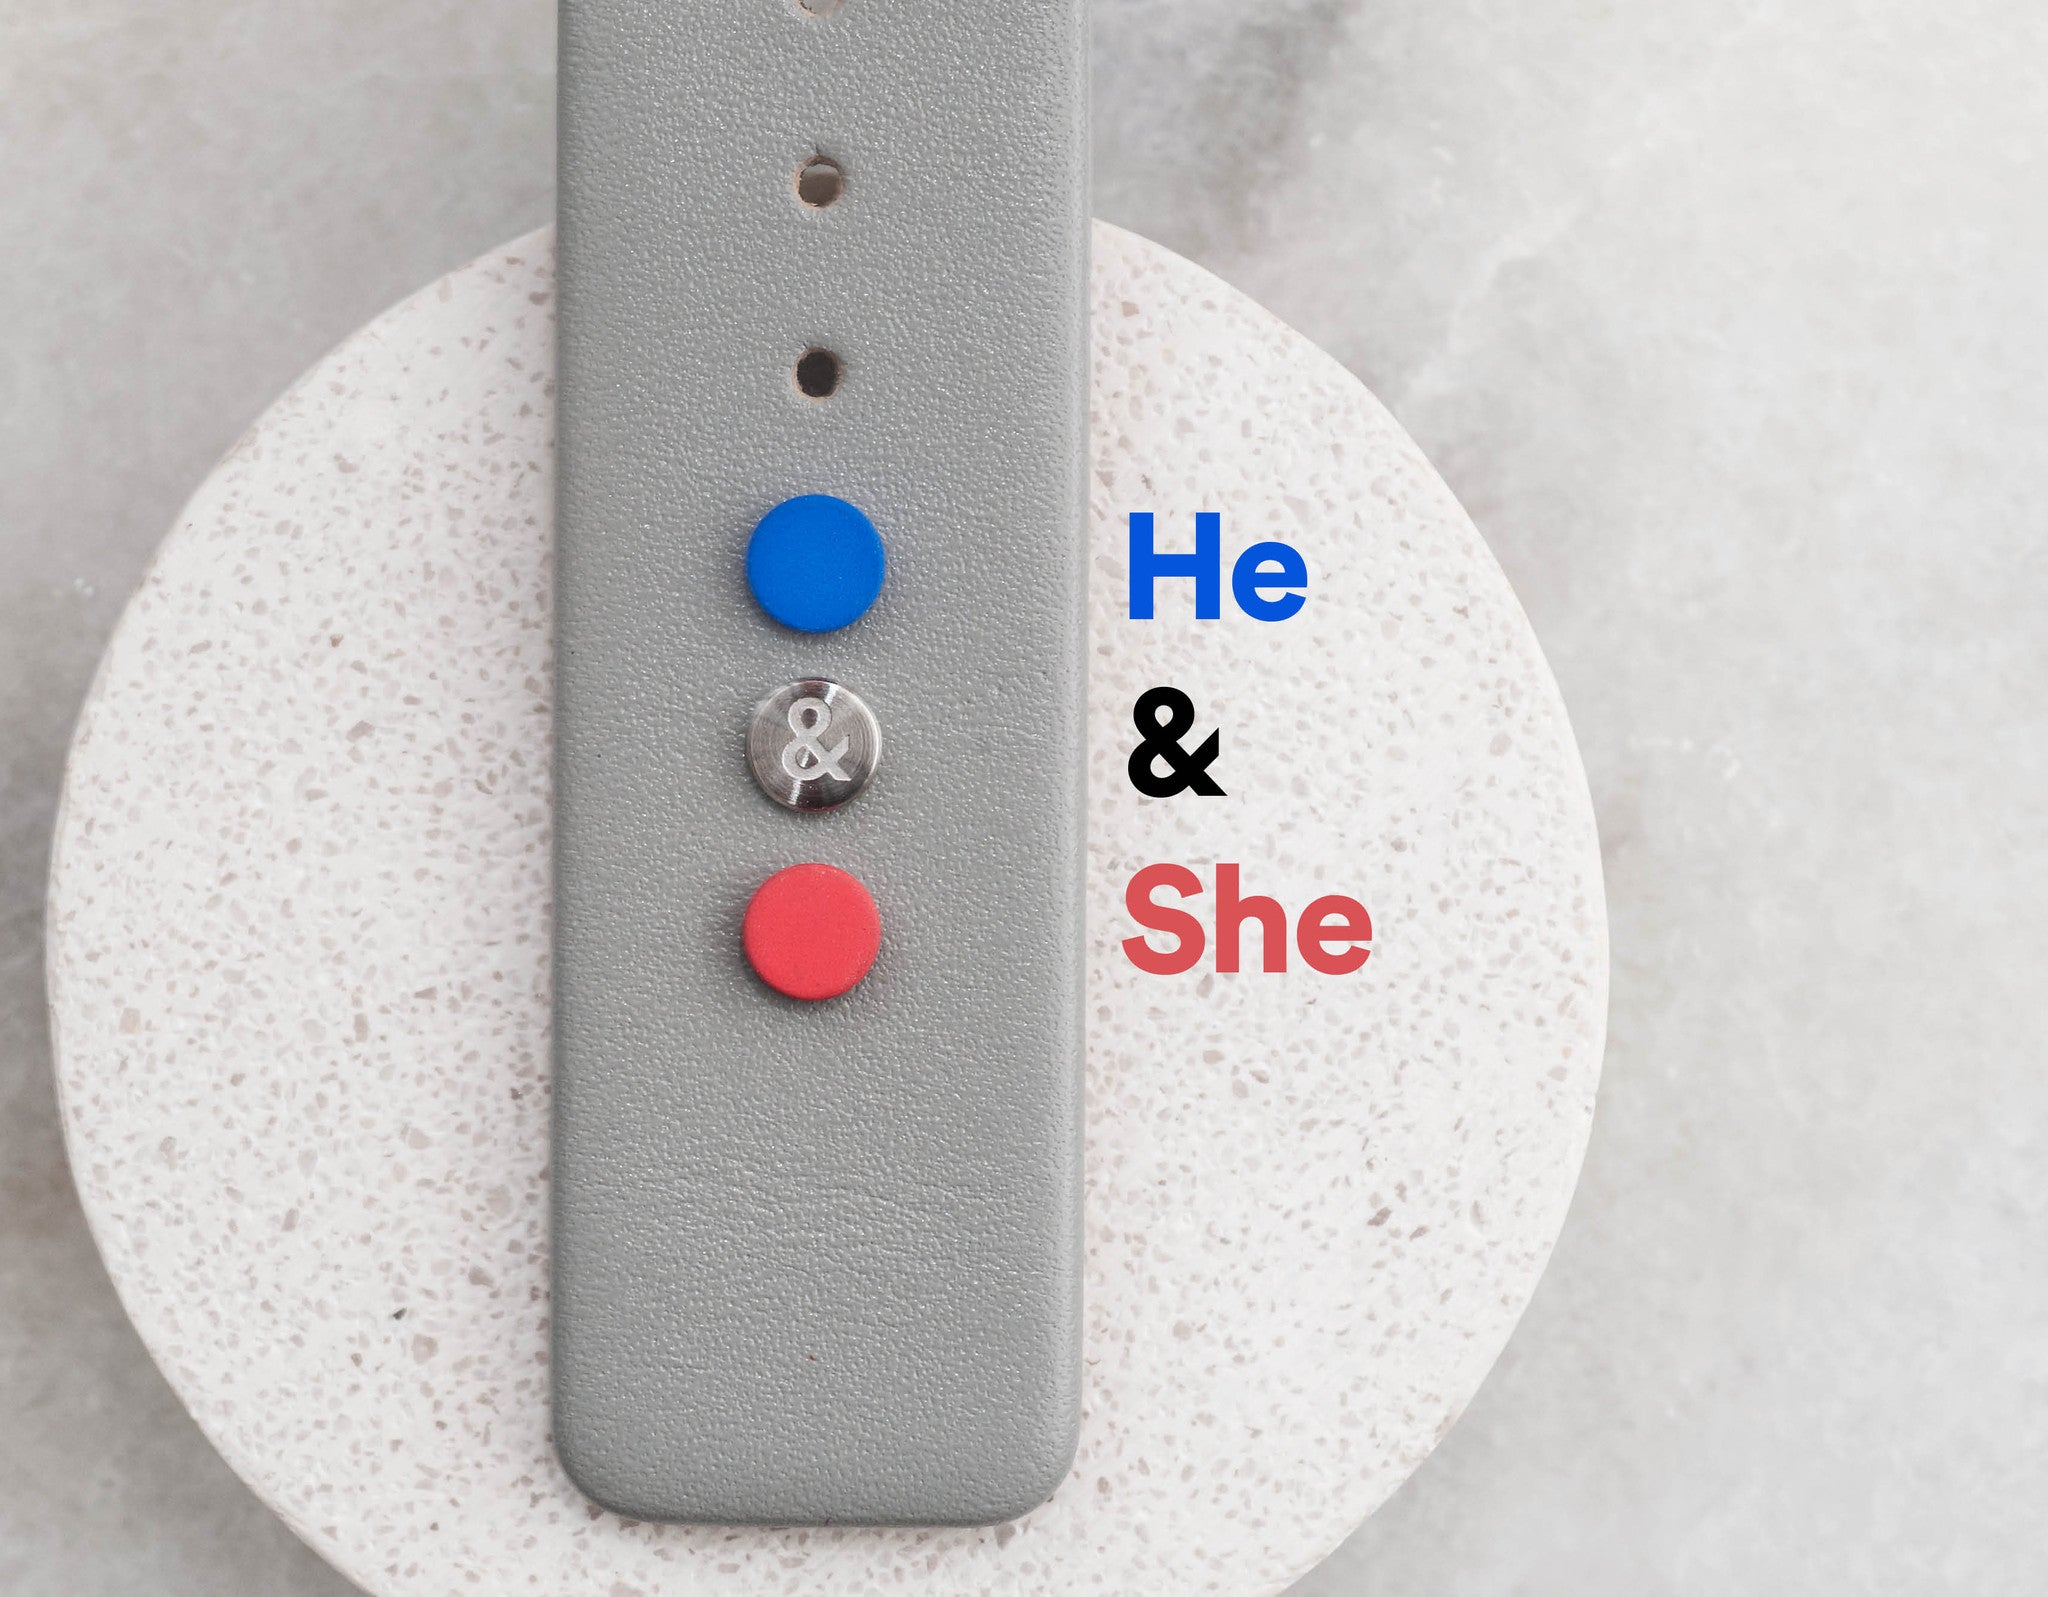 He & She - Leather strap with planet buttons (For series K452 & 000) - Anicorn